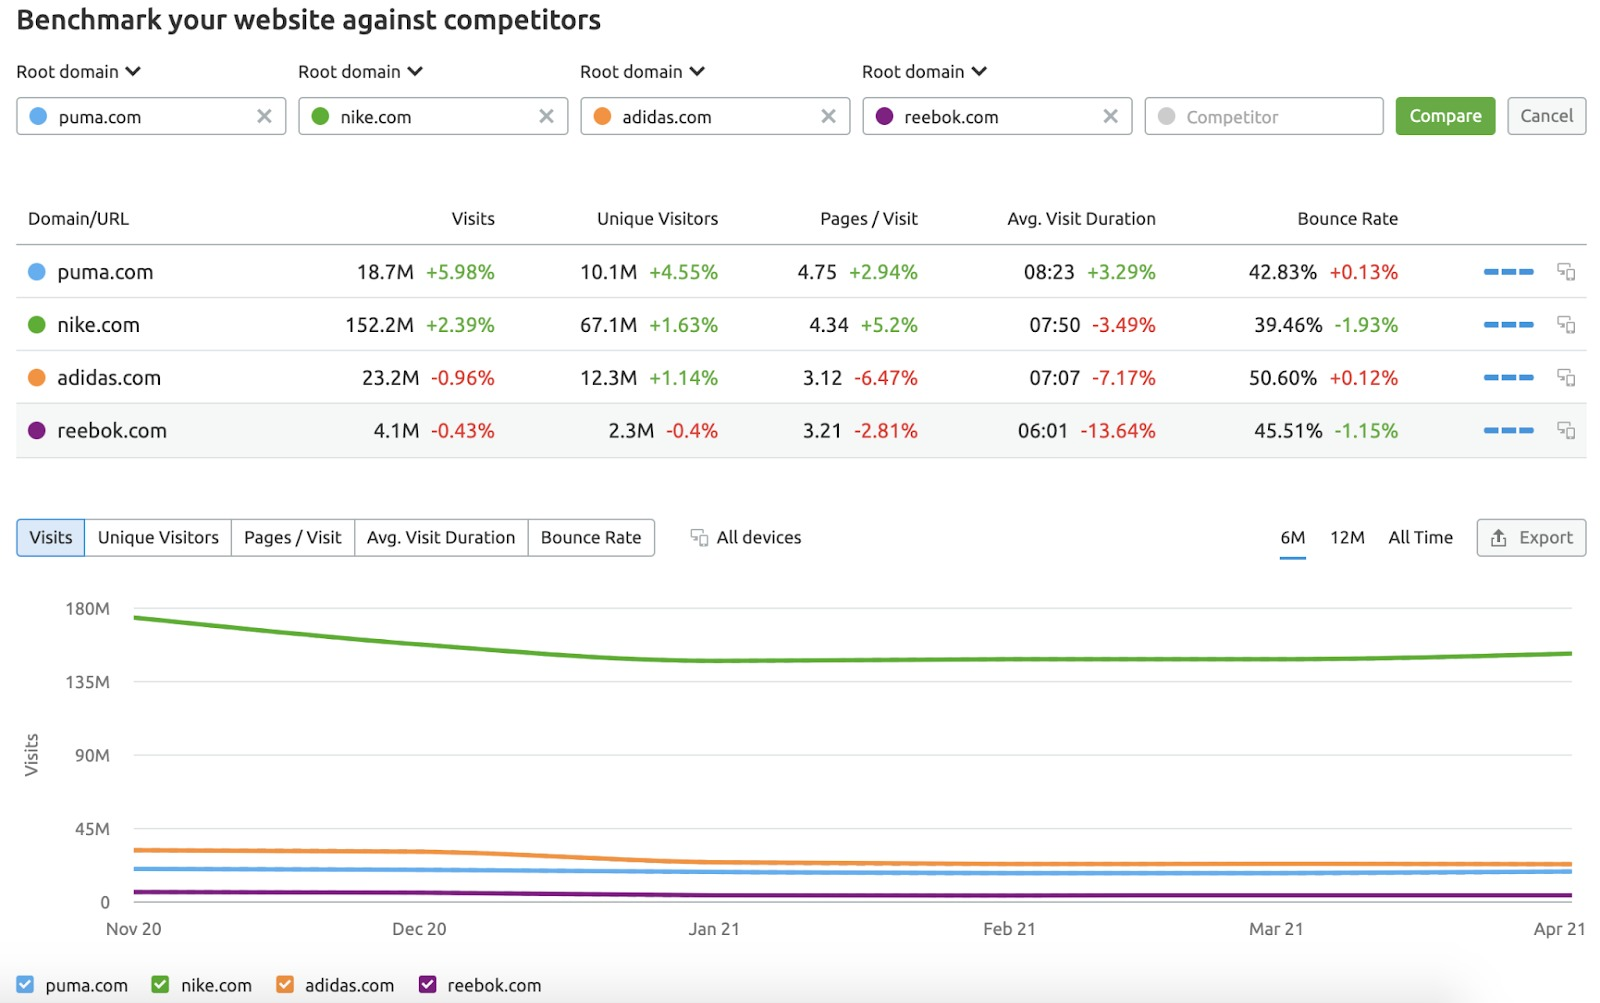 How to Compare Your Competitors' Online Performance image 1